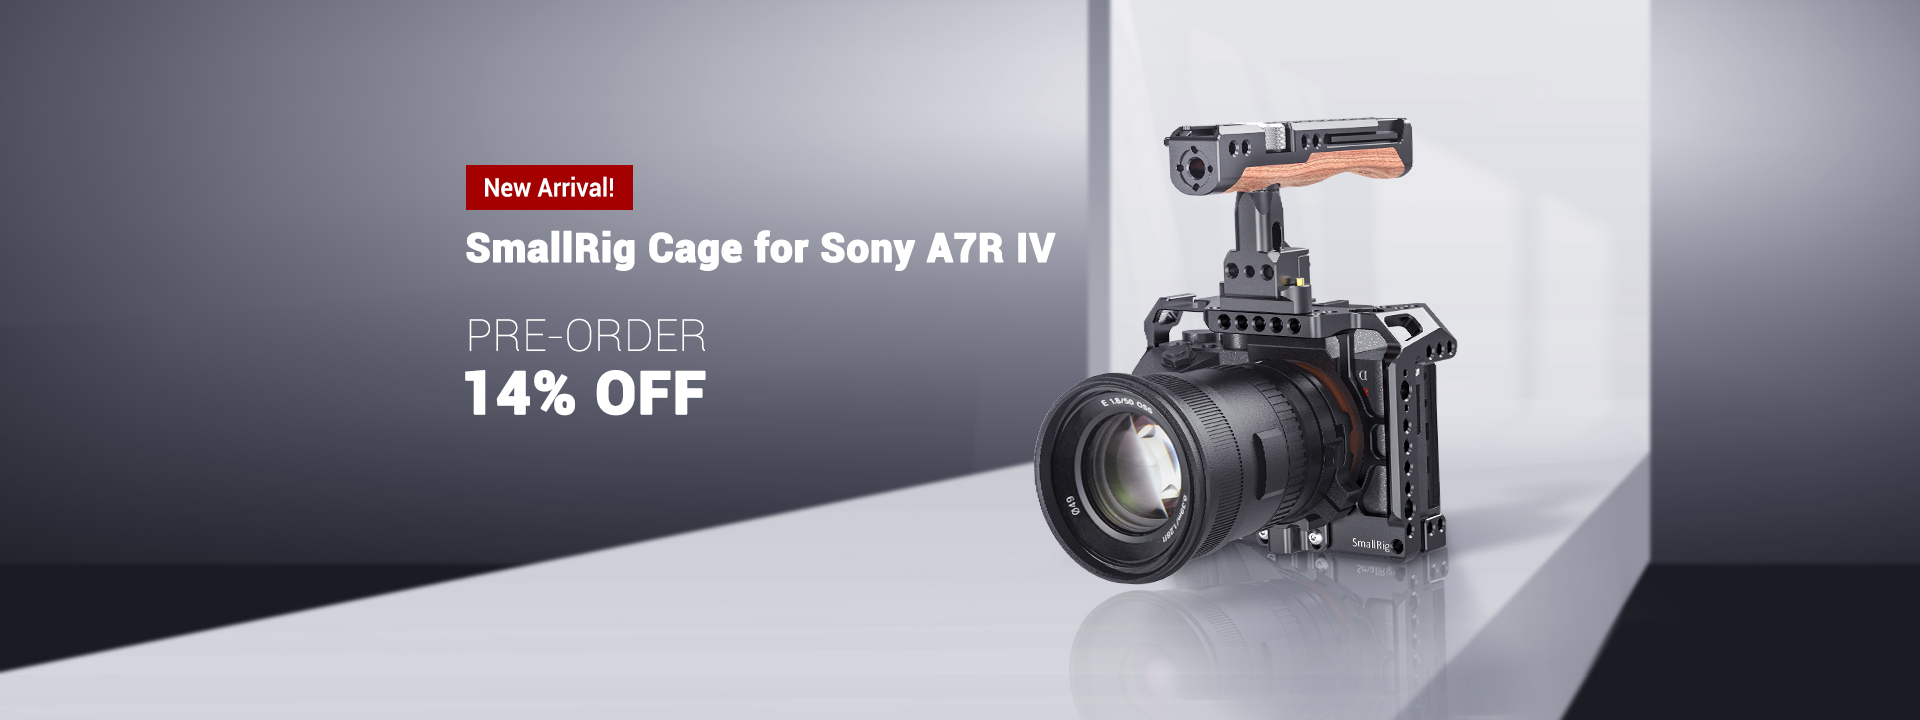 Sony A7R IV Cage